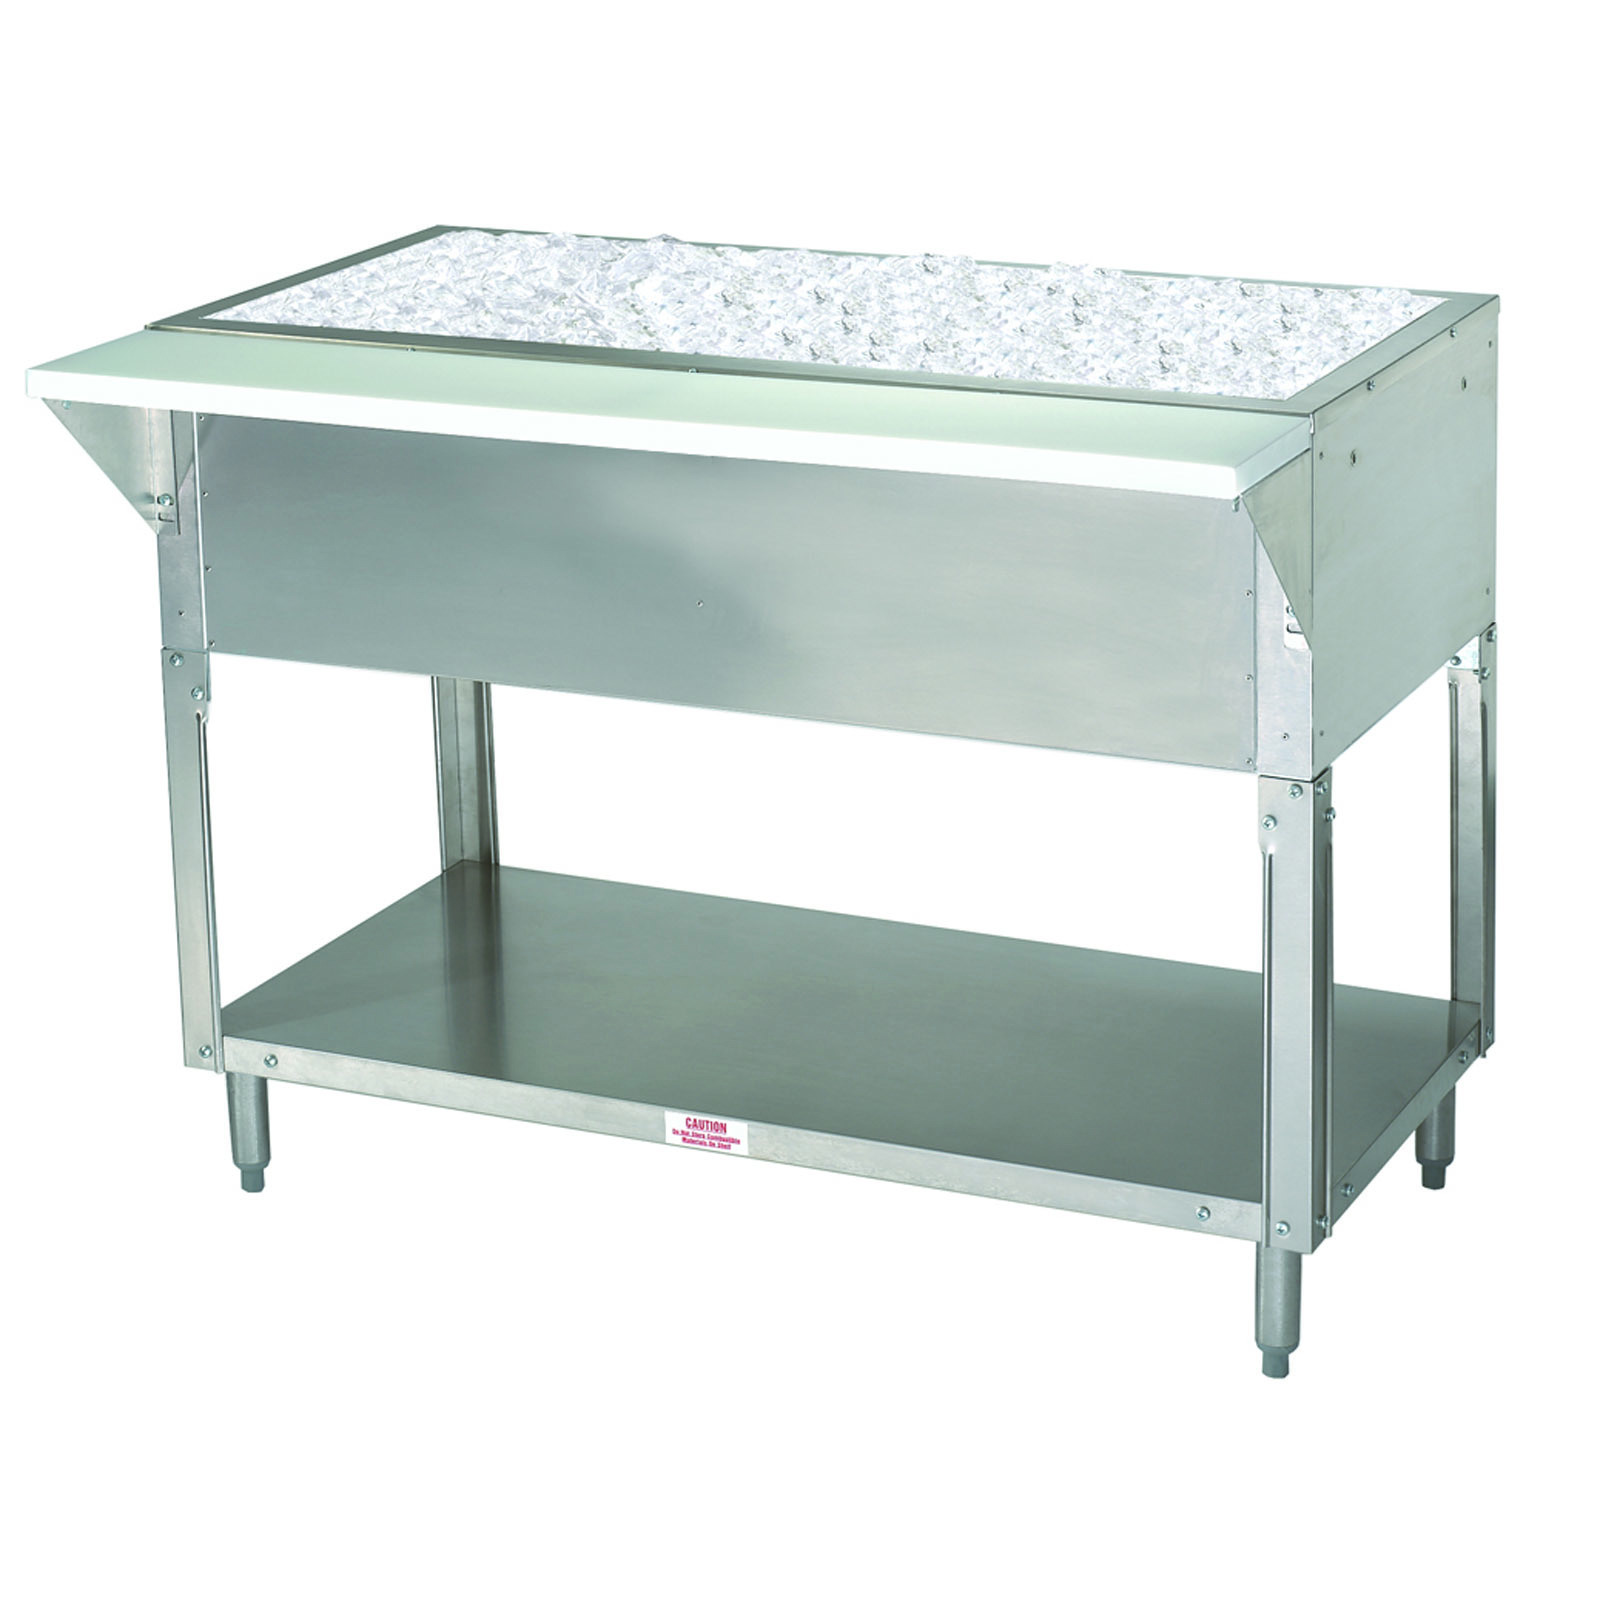 Advance Tabco CPU-3 serving counter, cold food